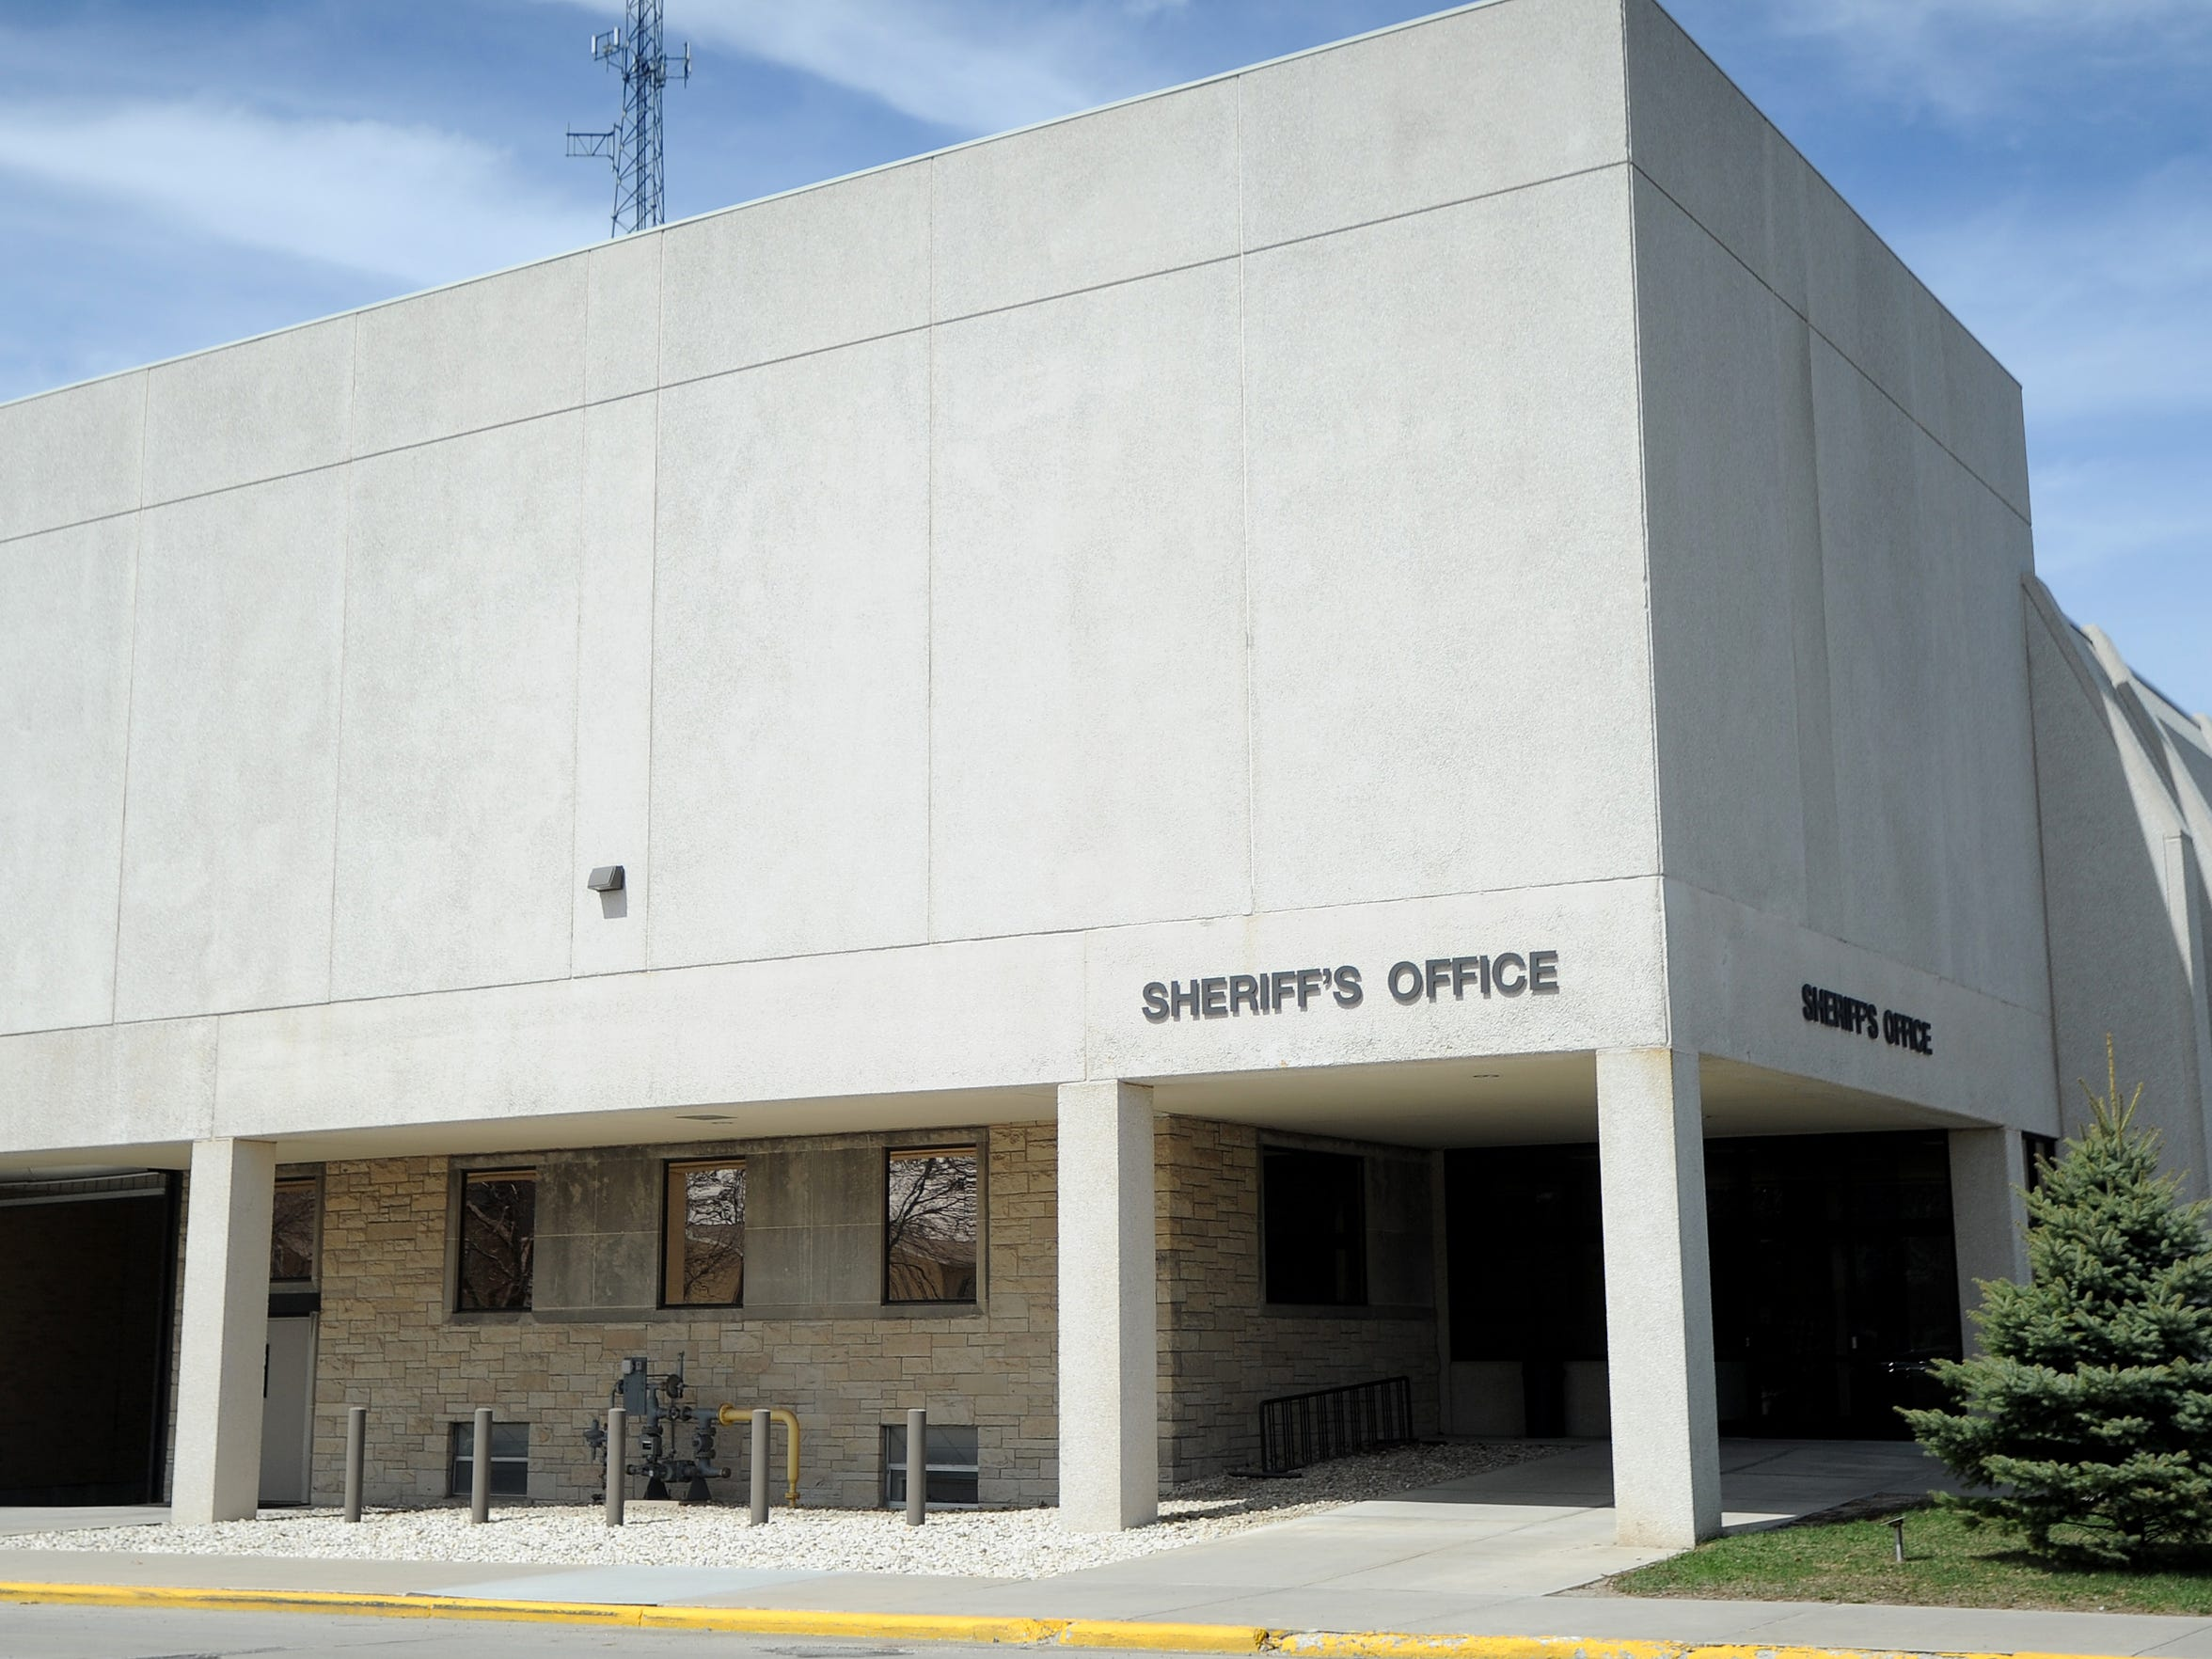 Officials at the Fond du Lac County Sheriff's Office